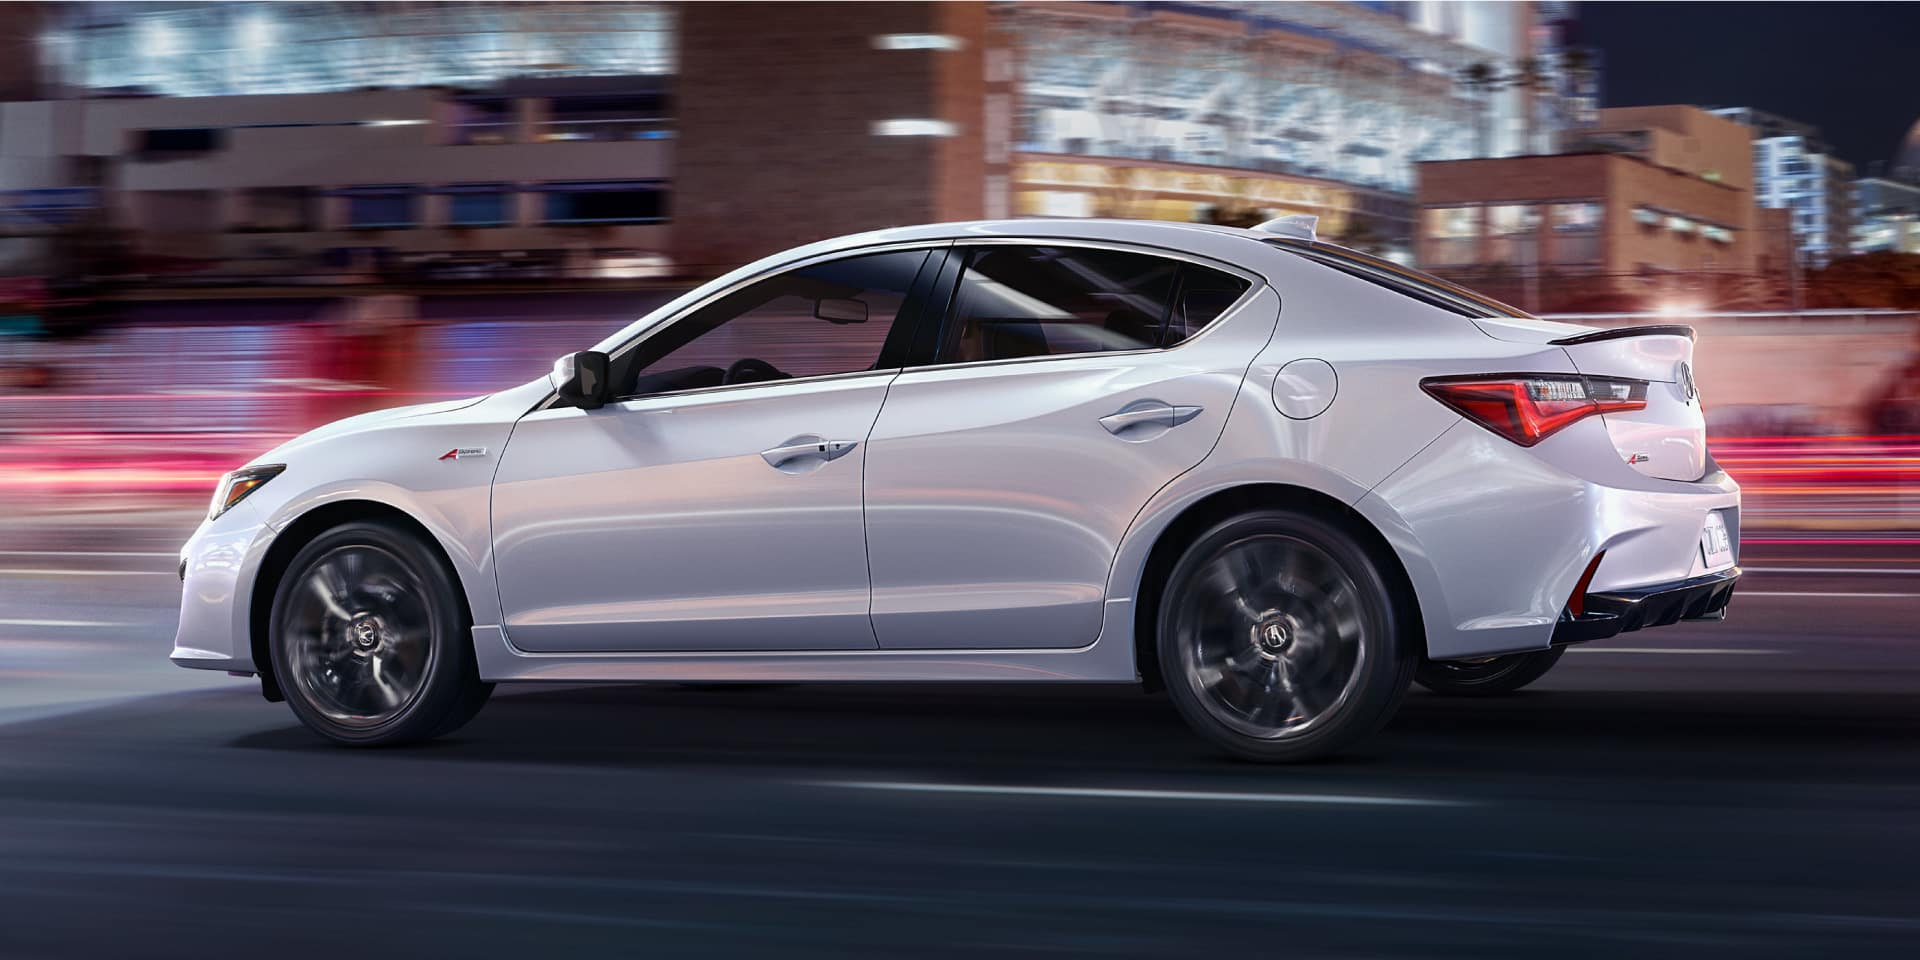 2019 Acura ILX at Friendly Acura in Middletown